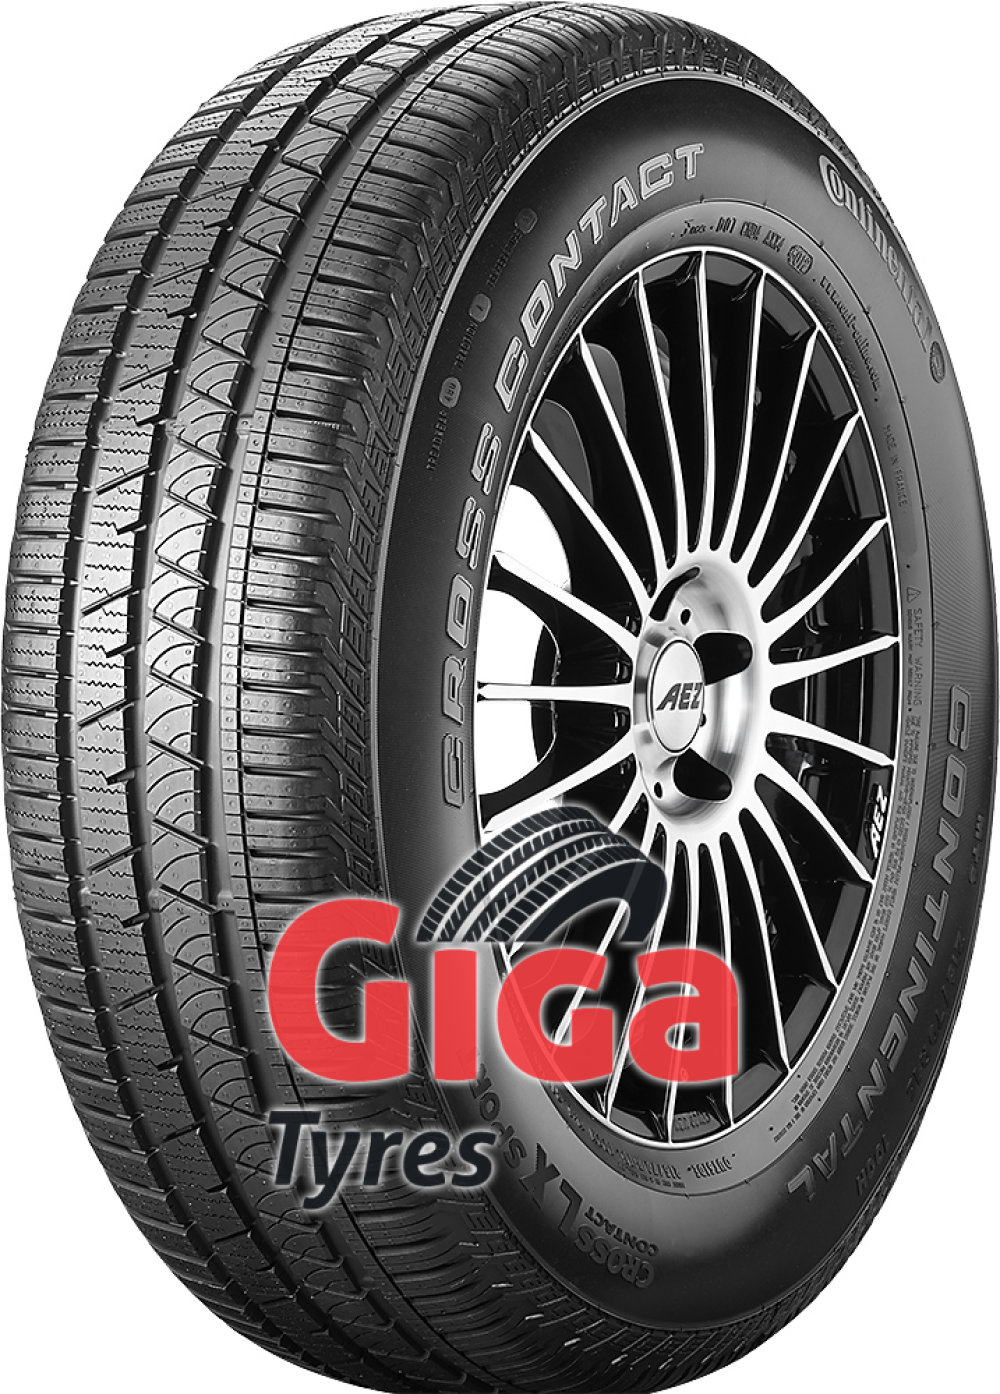 Continental ContiCrossContact LX Sport ( 255/55 R18 109H XL with kerbing rib )